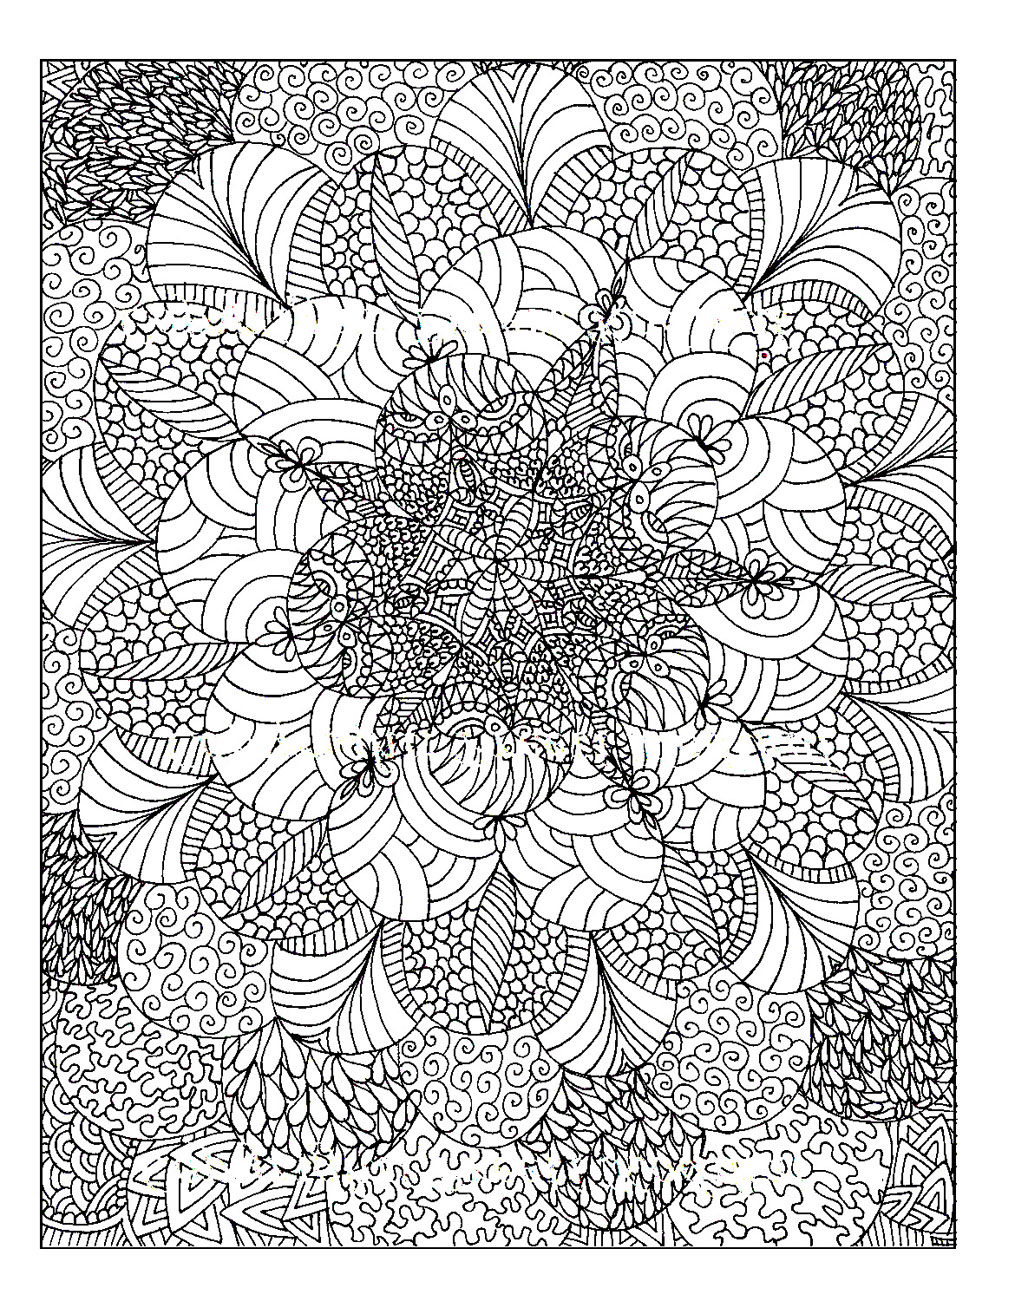 Colouring for adults anti stress colouring printables Colouring book for adults online